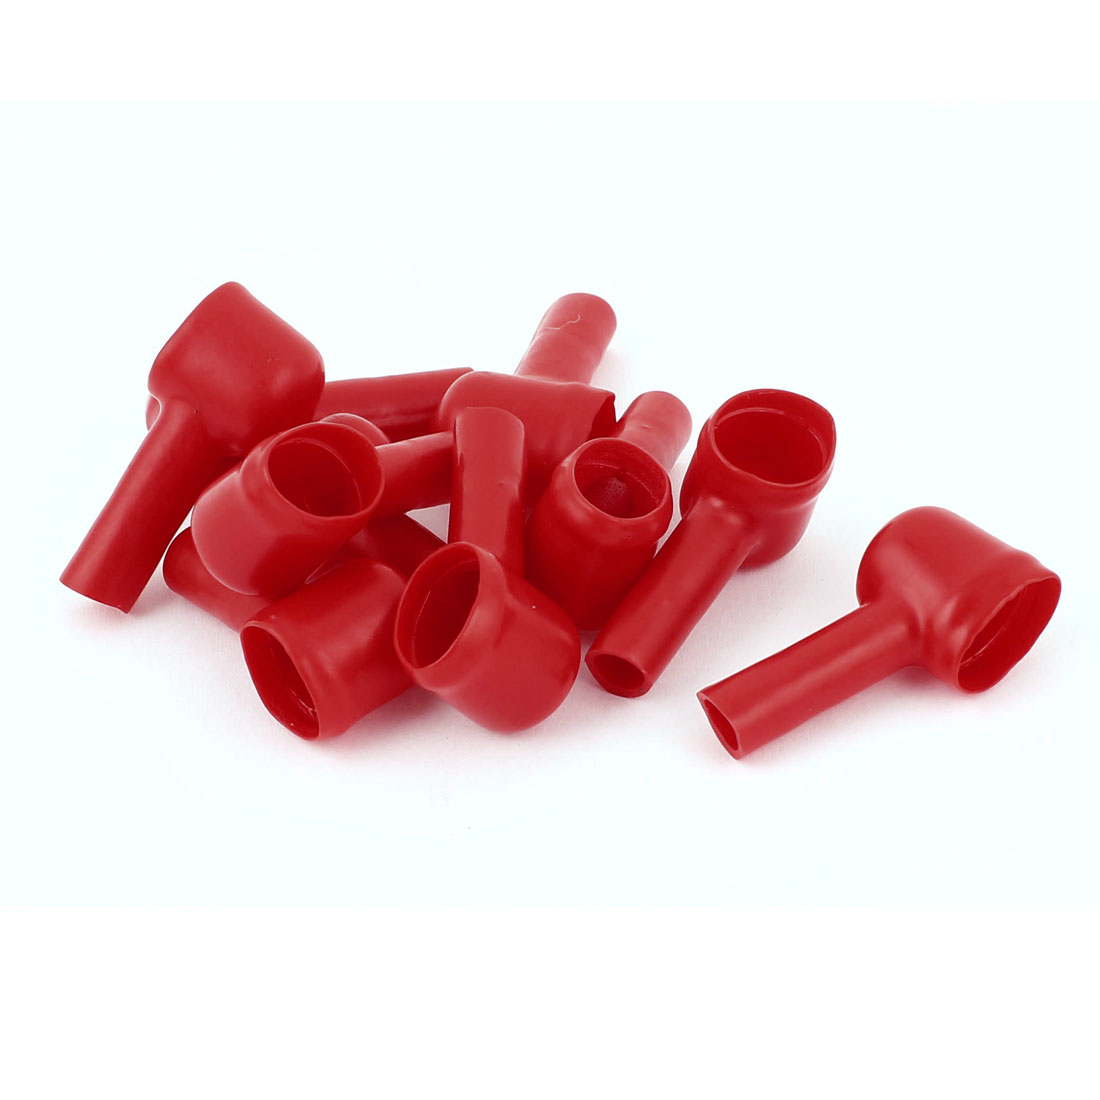 10Pcs Angle Type PVC Battery Terminal Insulating Protector Covers Red 13mmx7mm